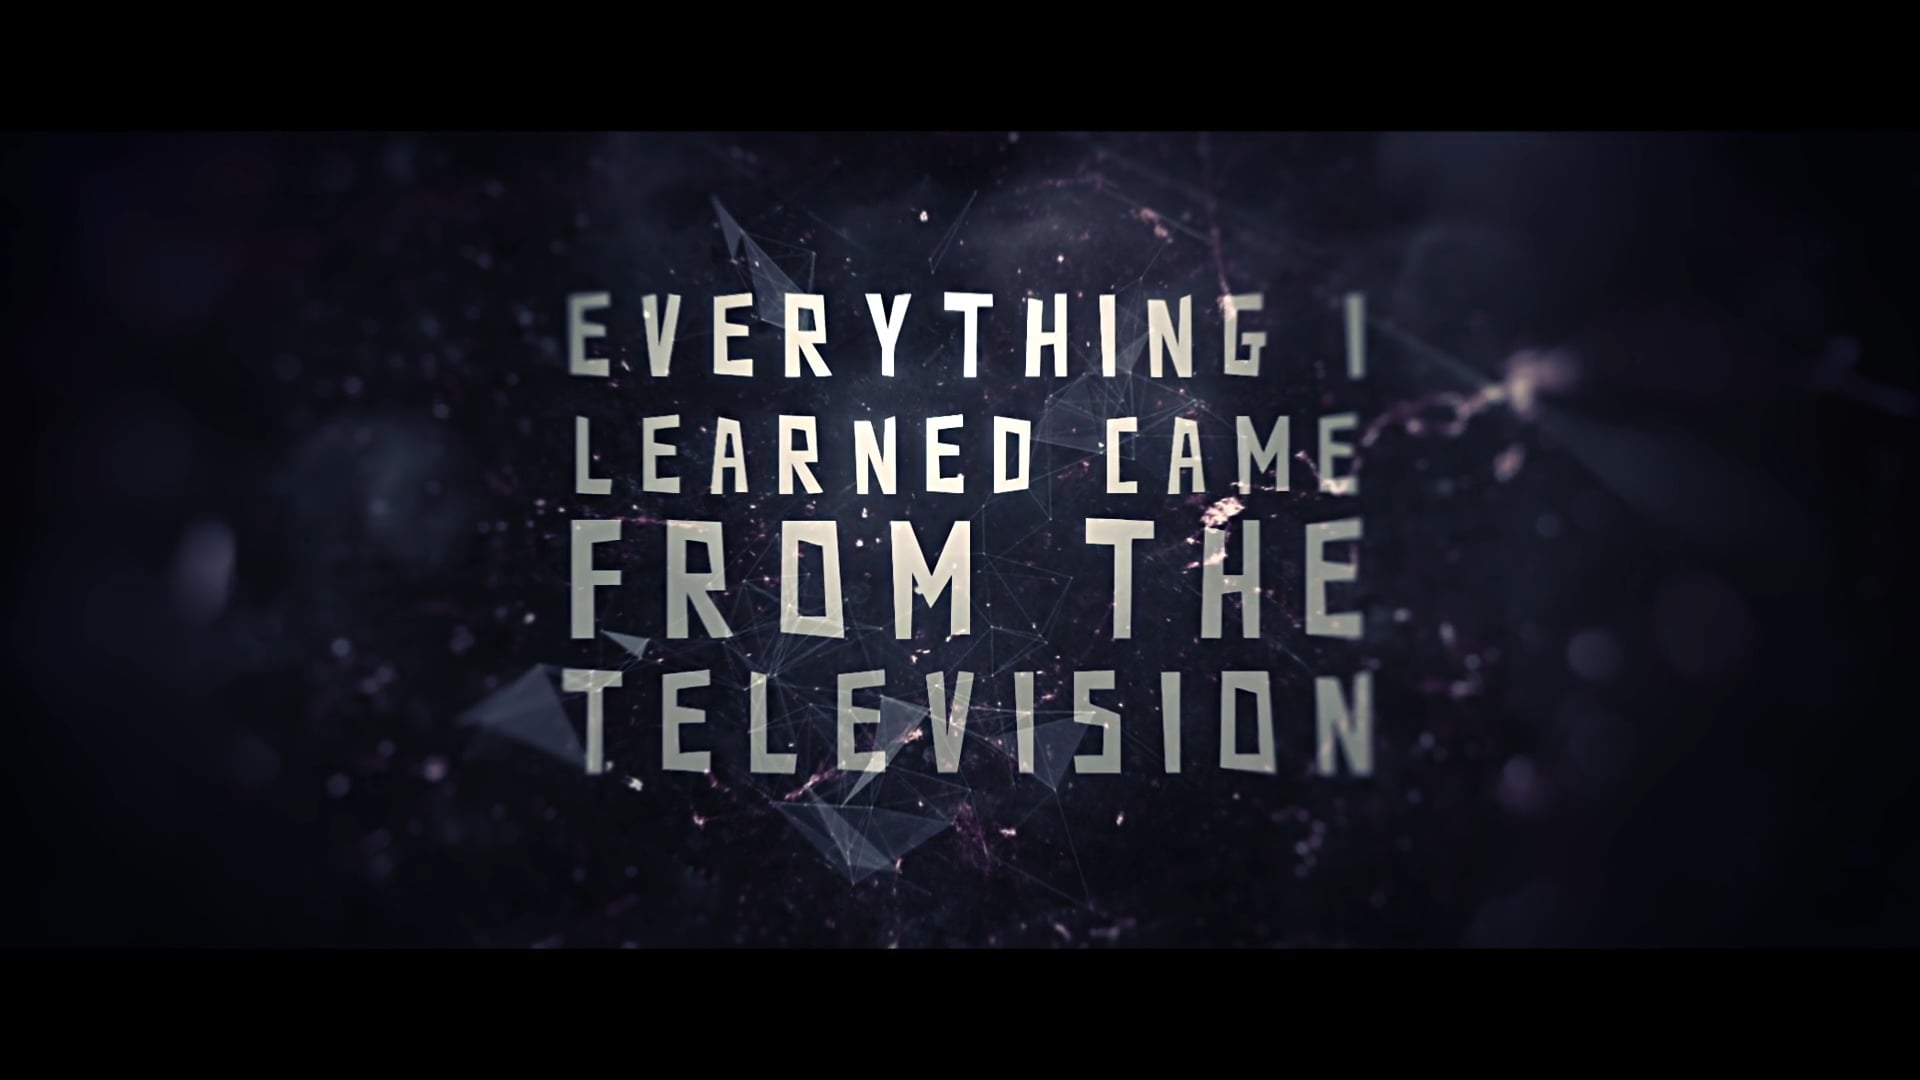 EVERYTHING I LEARNED CAME FROM THE TELEVISION - TRAILER